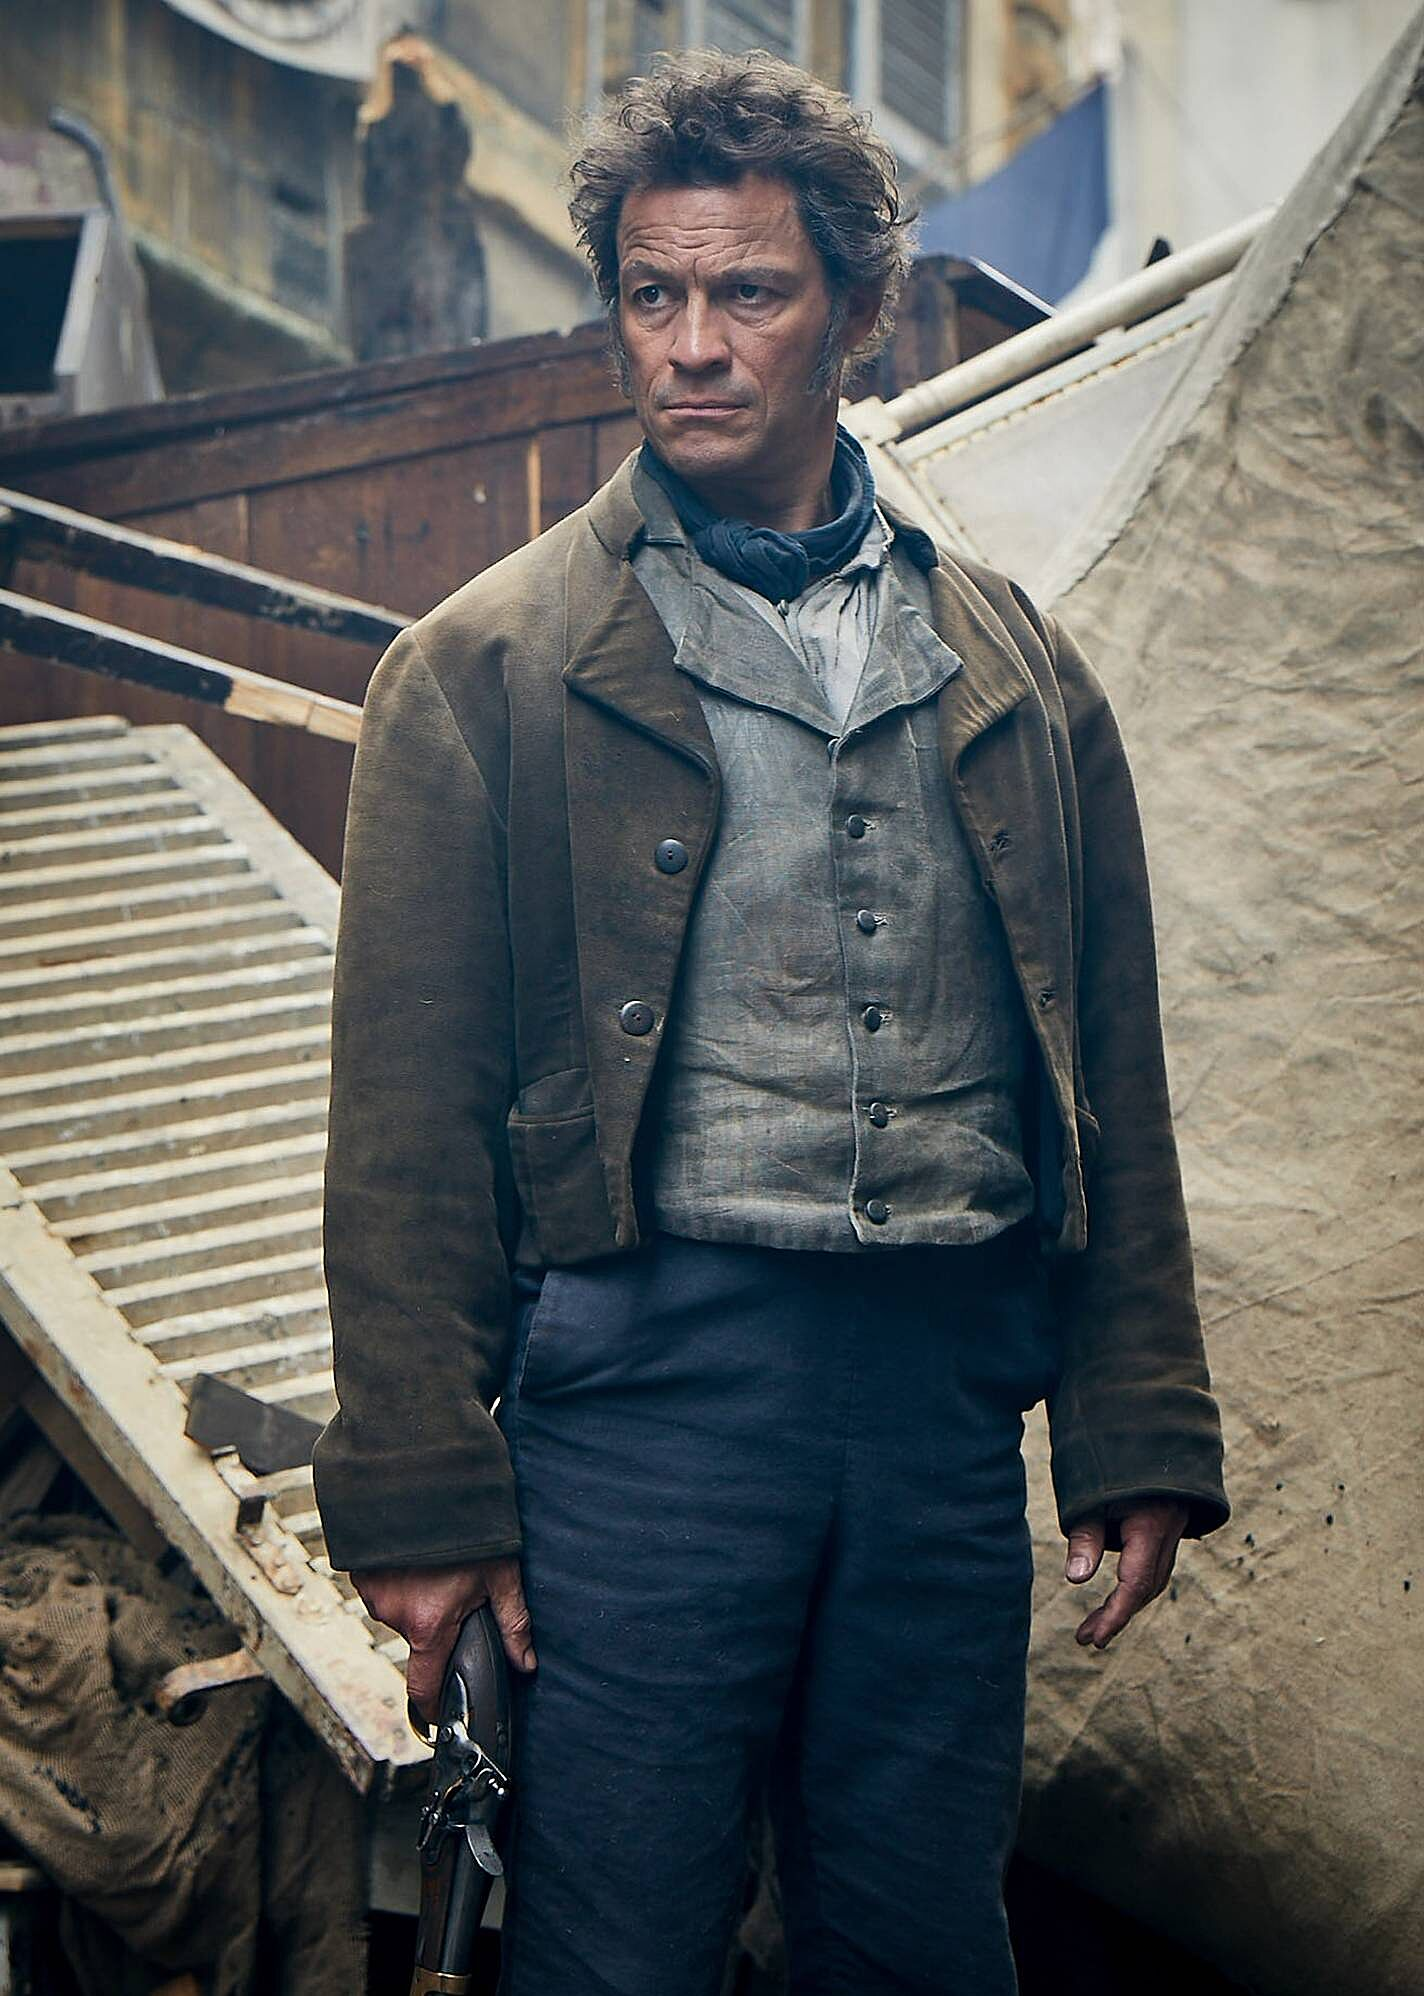 Les Miserables adaptation to hit the small screen on